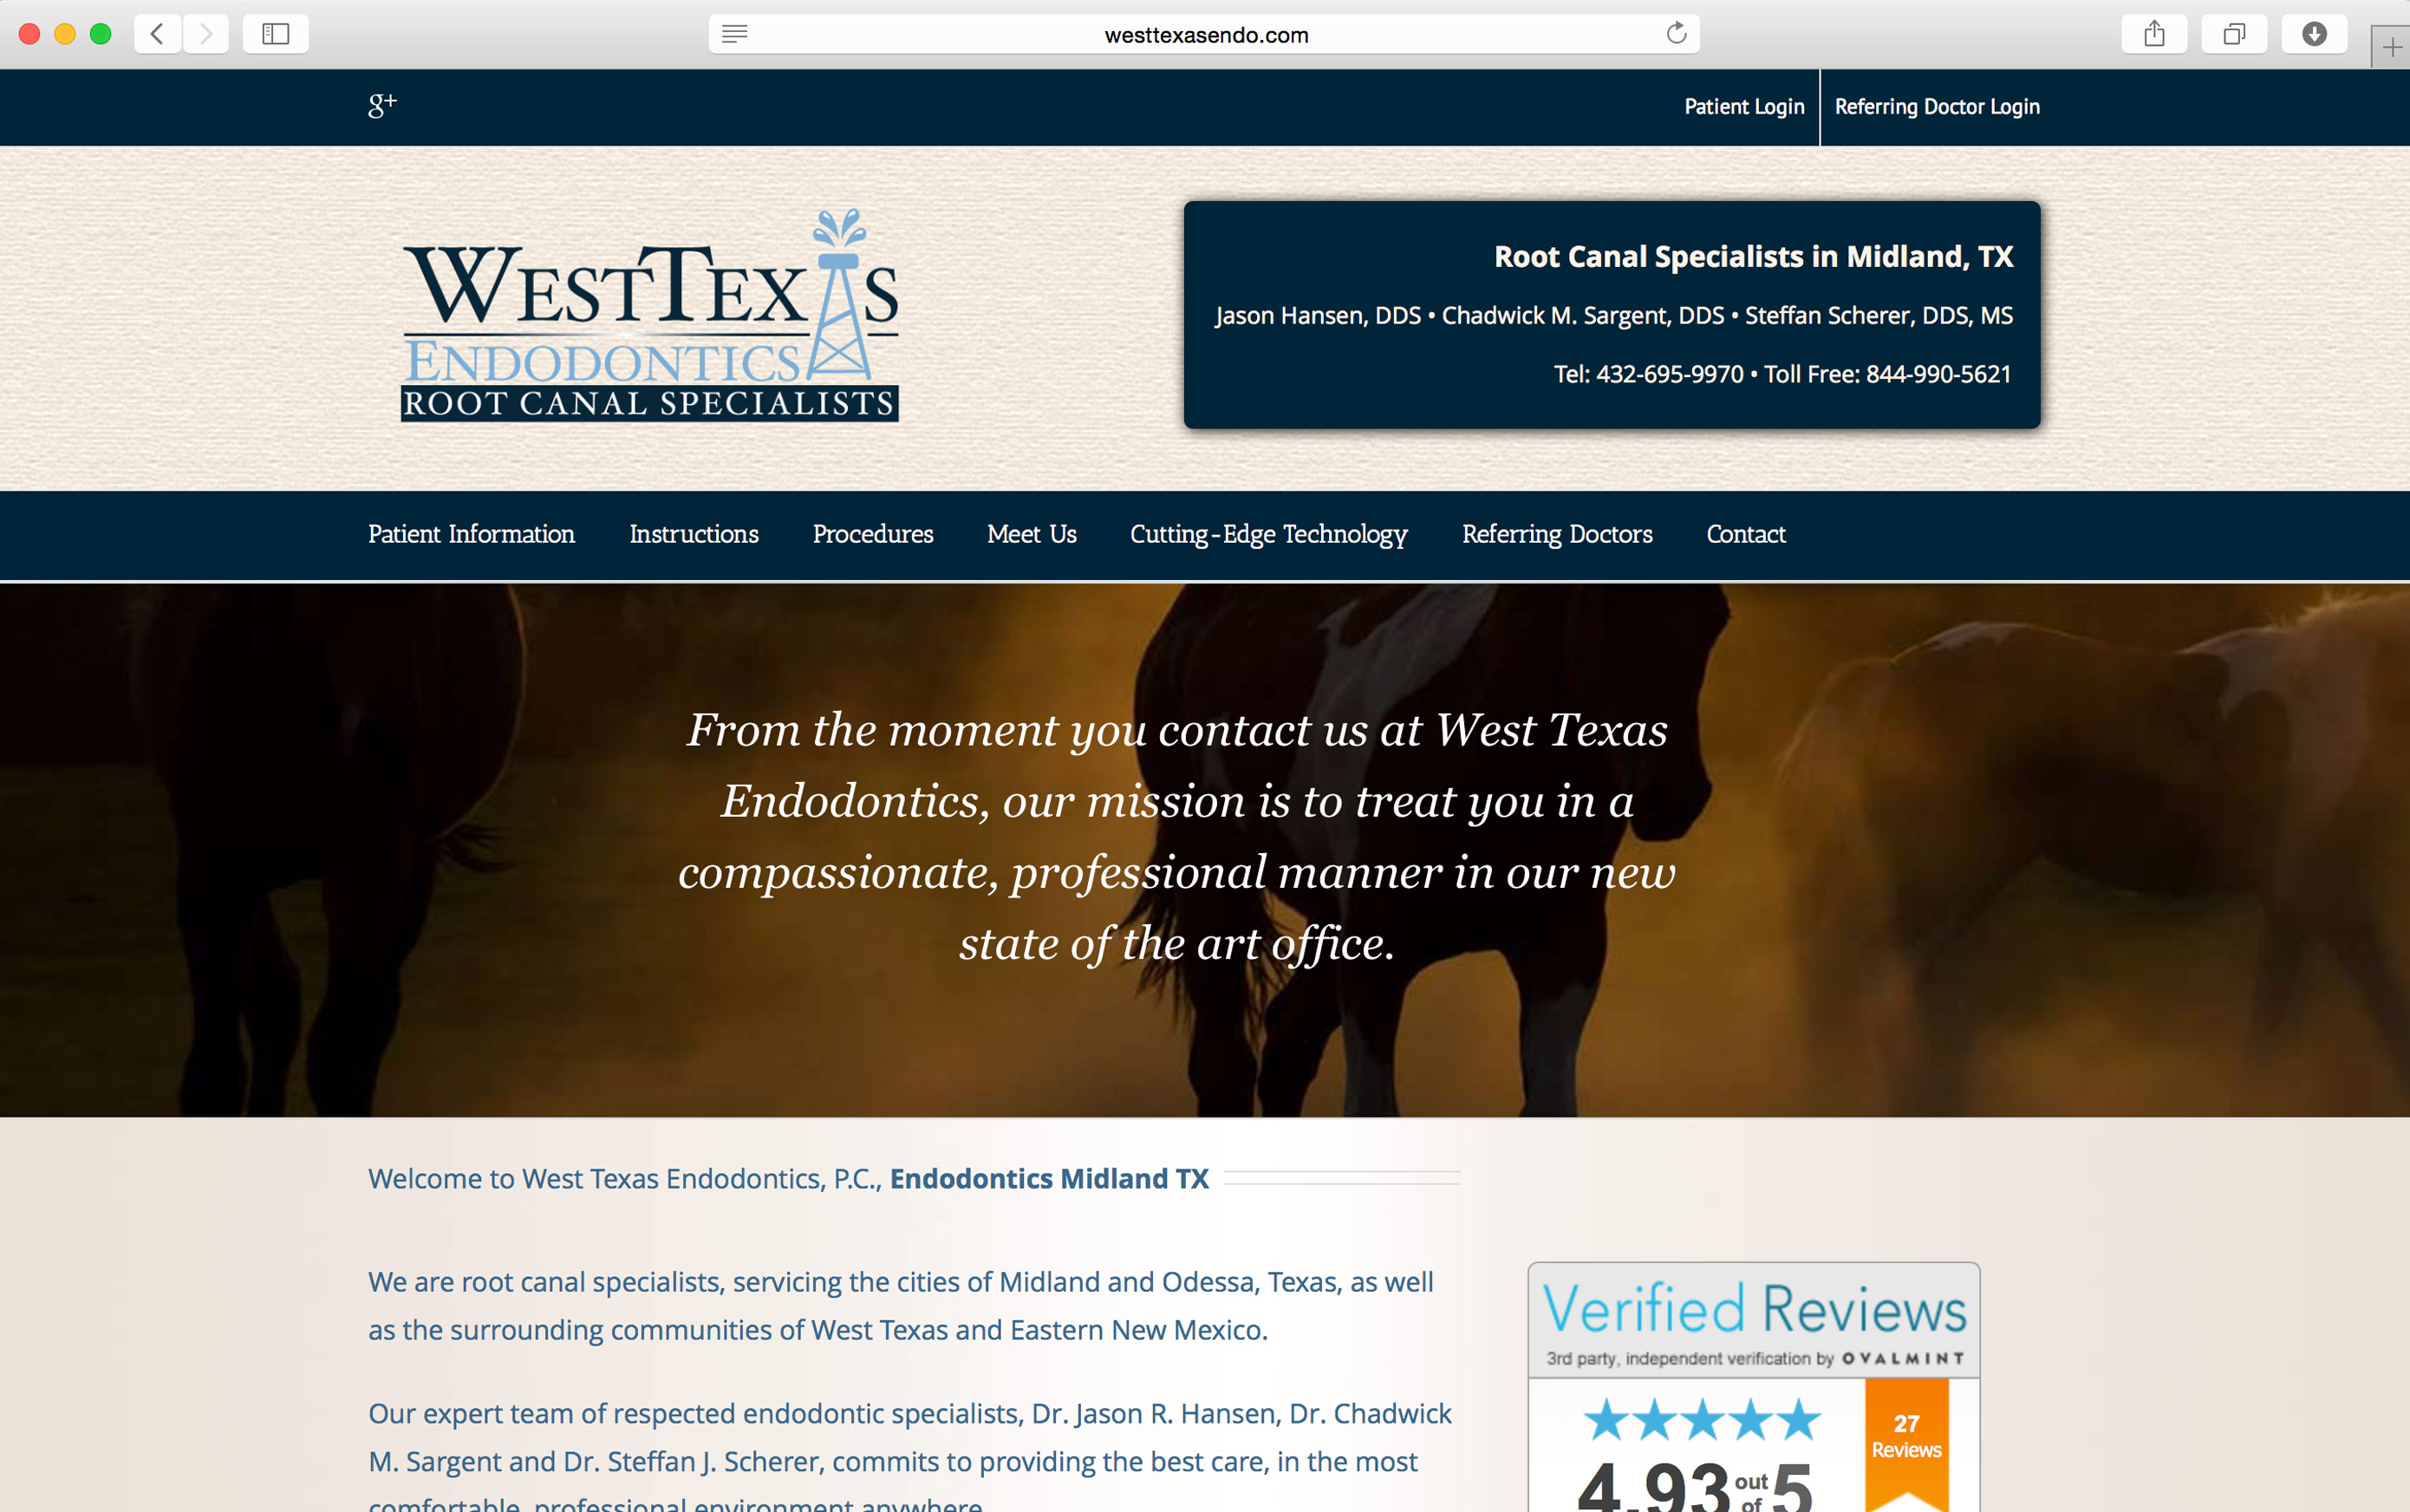 west texas endodontics midland tx - West Website